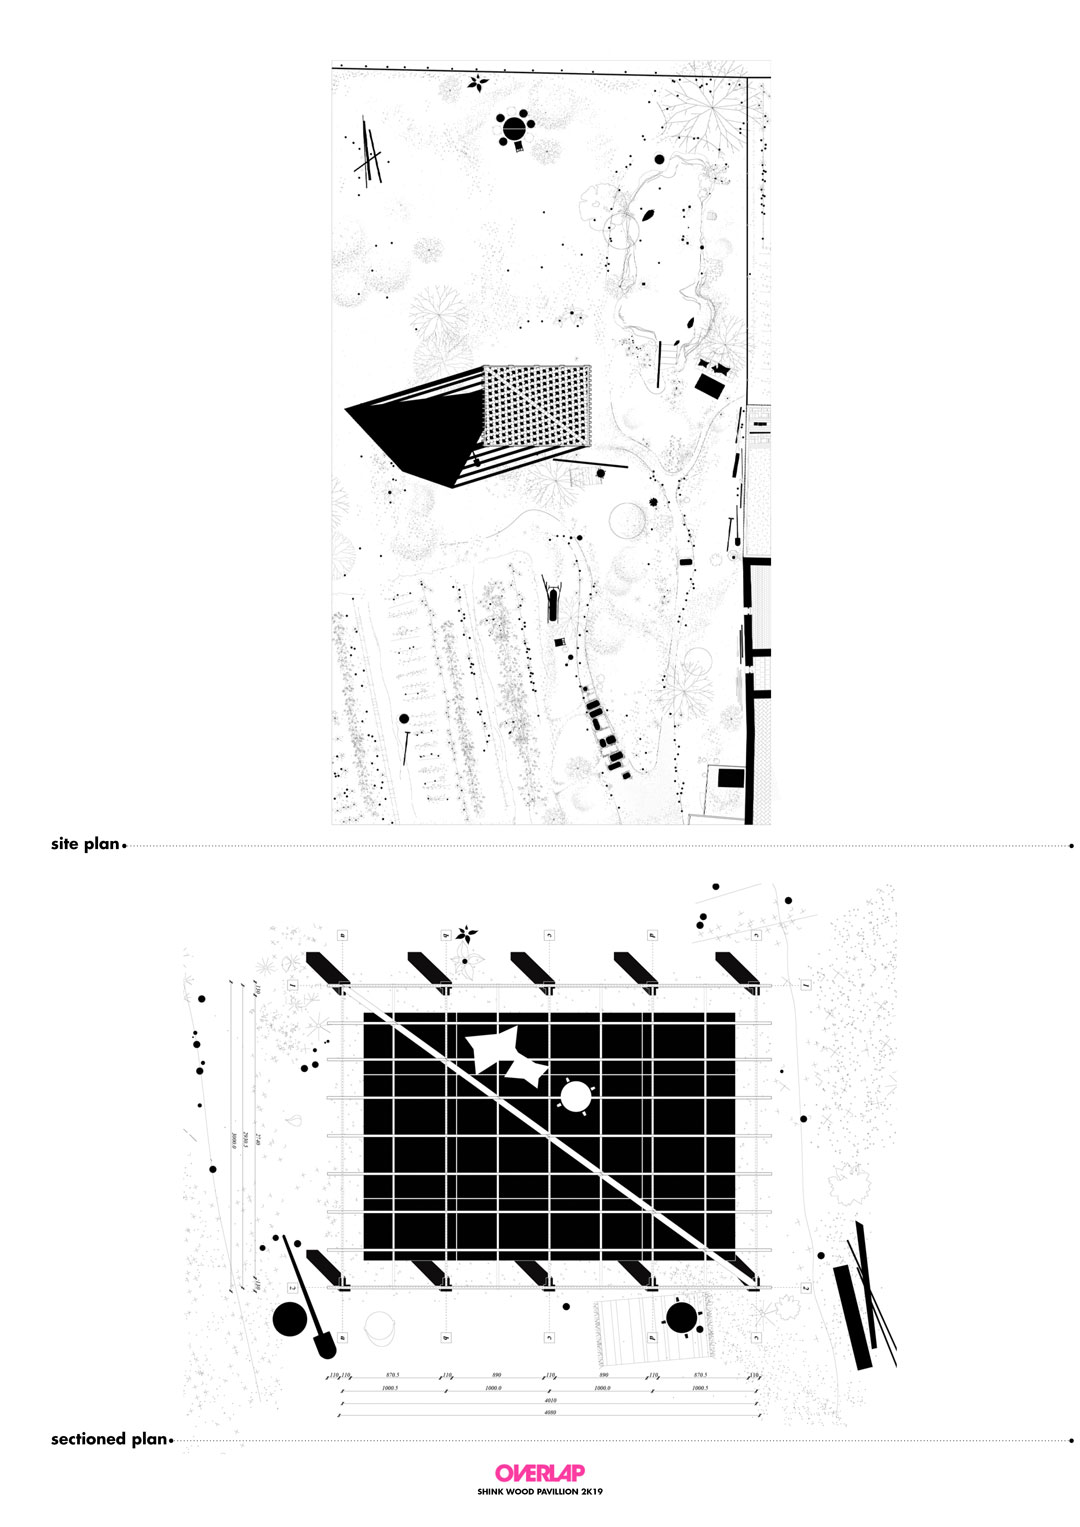 Building this wood pavilion explained through a black and white site plan and ground floor plan drawings, showing details of the garden, vegetation and finishing of the gazebo.